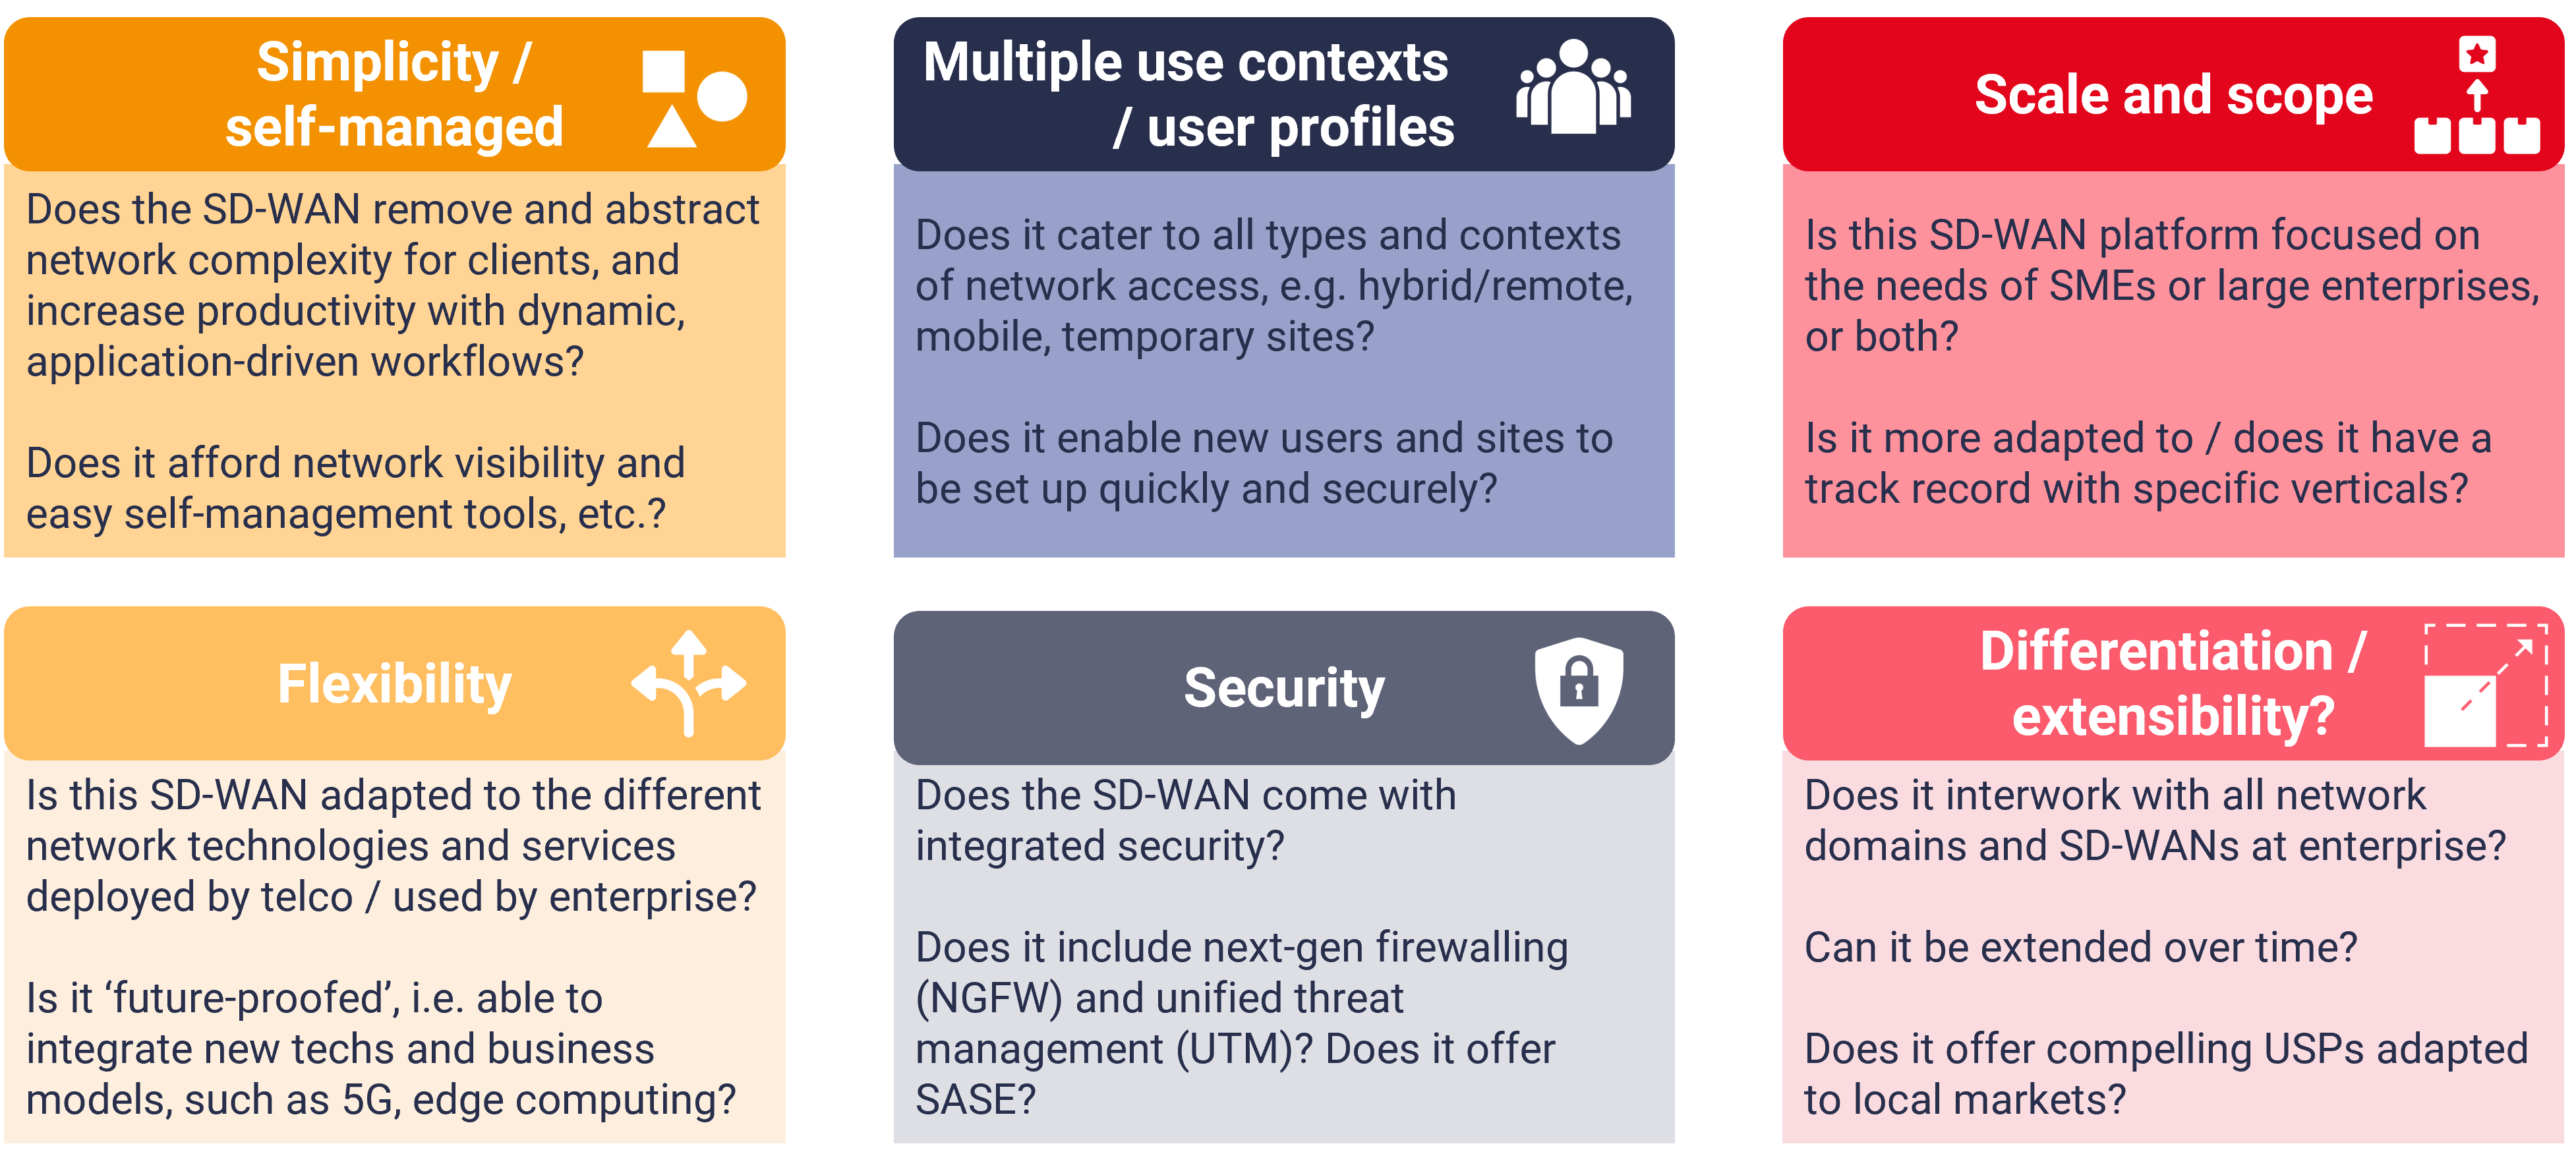 How to assess SD-WAN paltforms